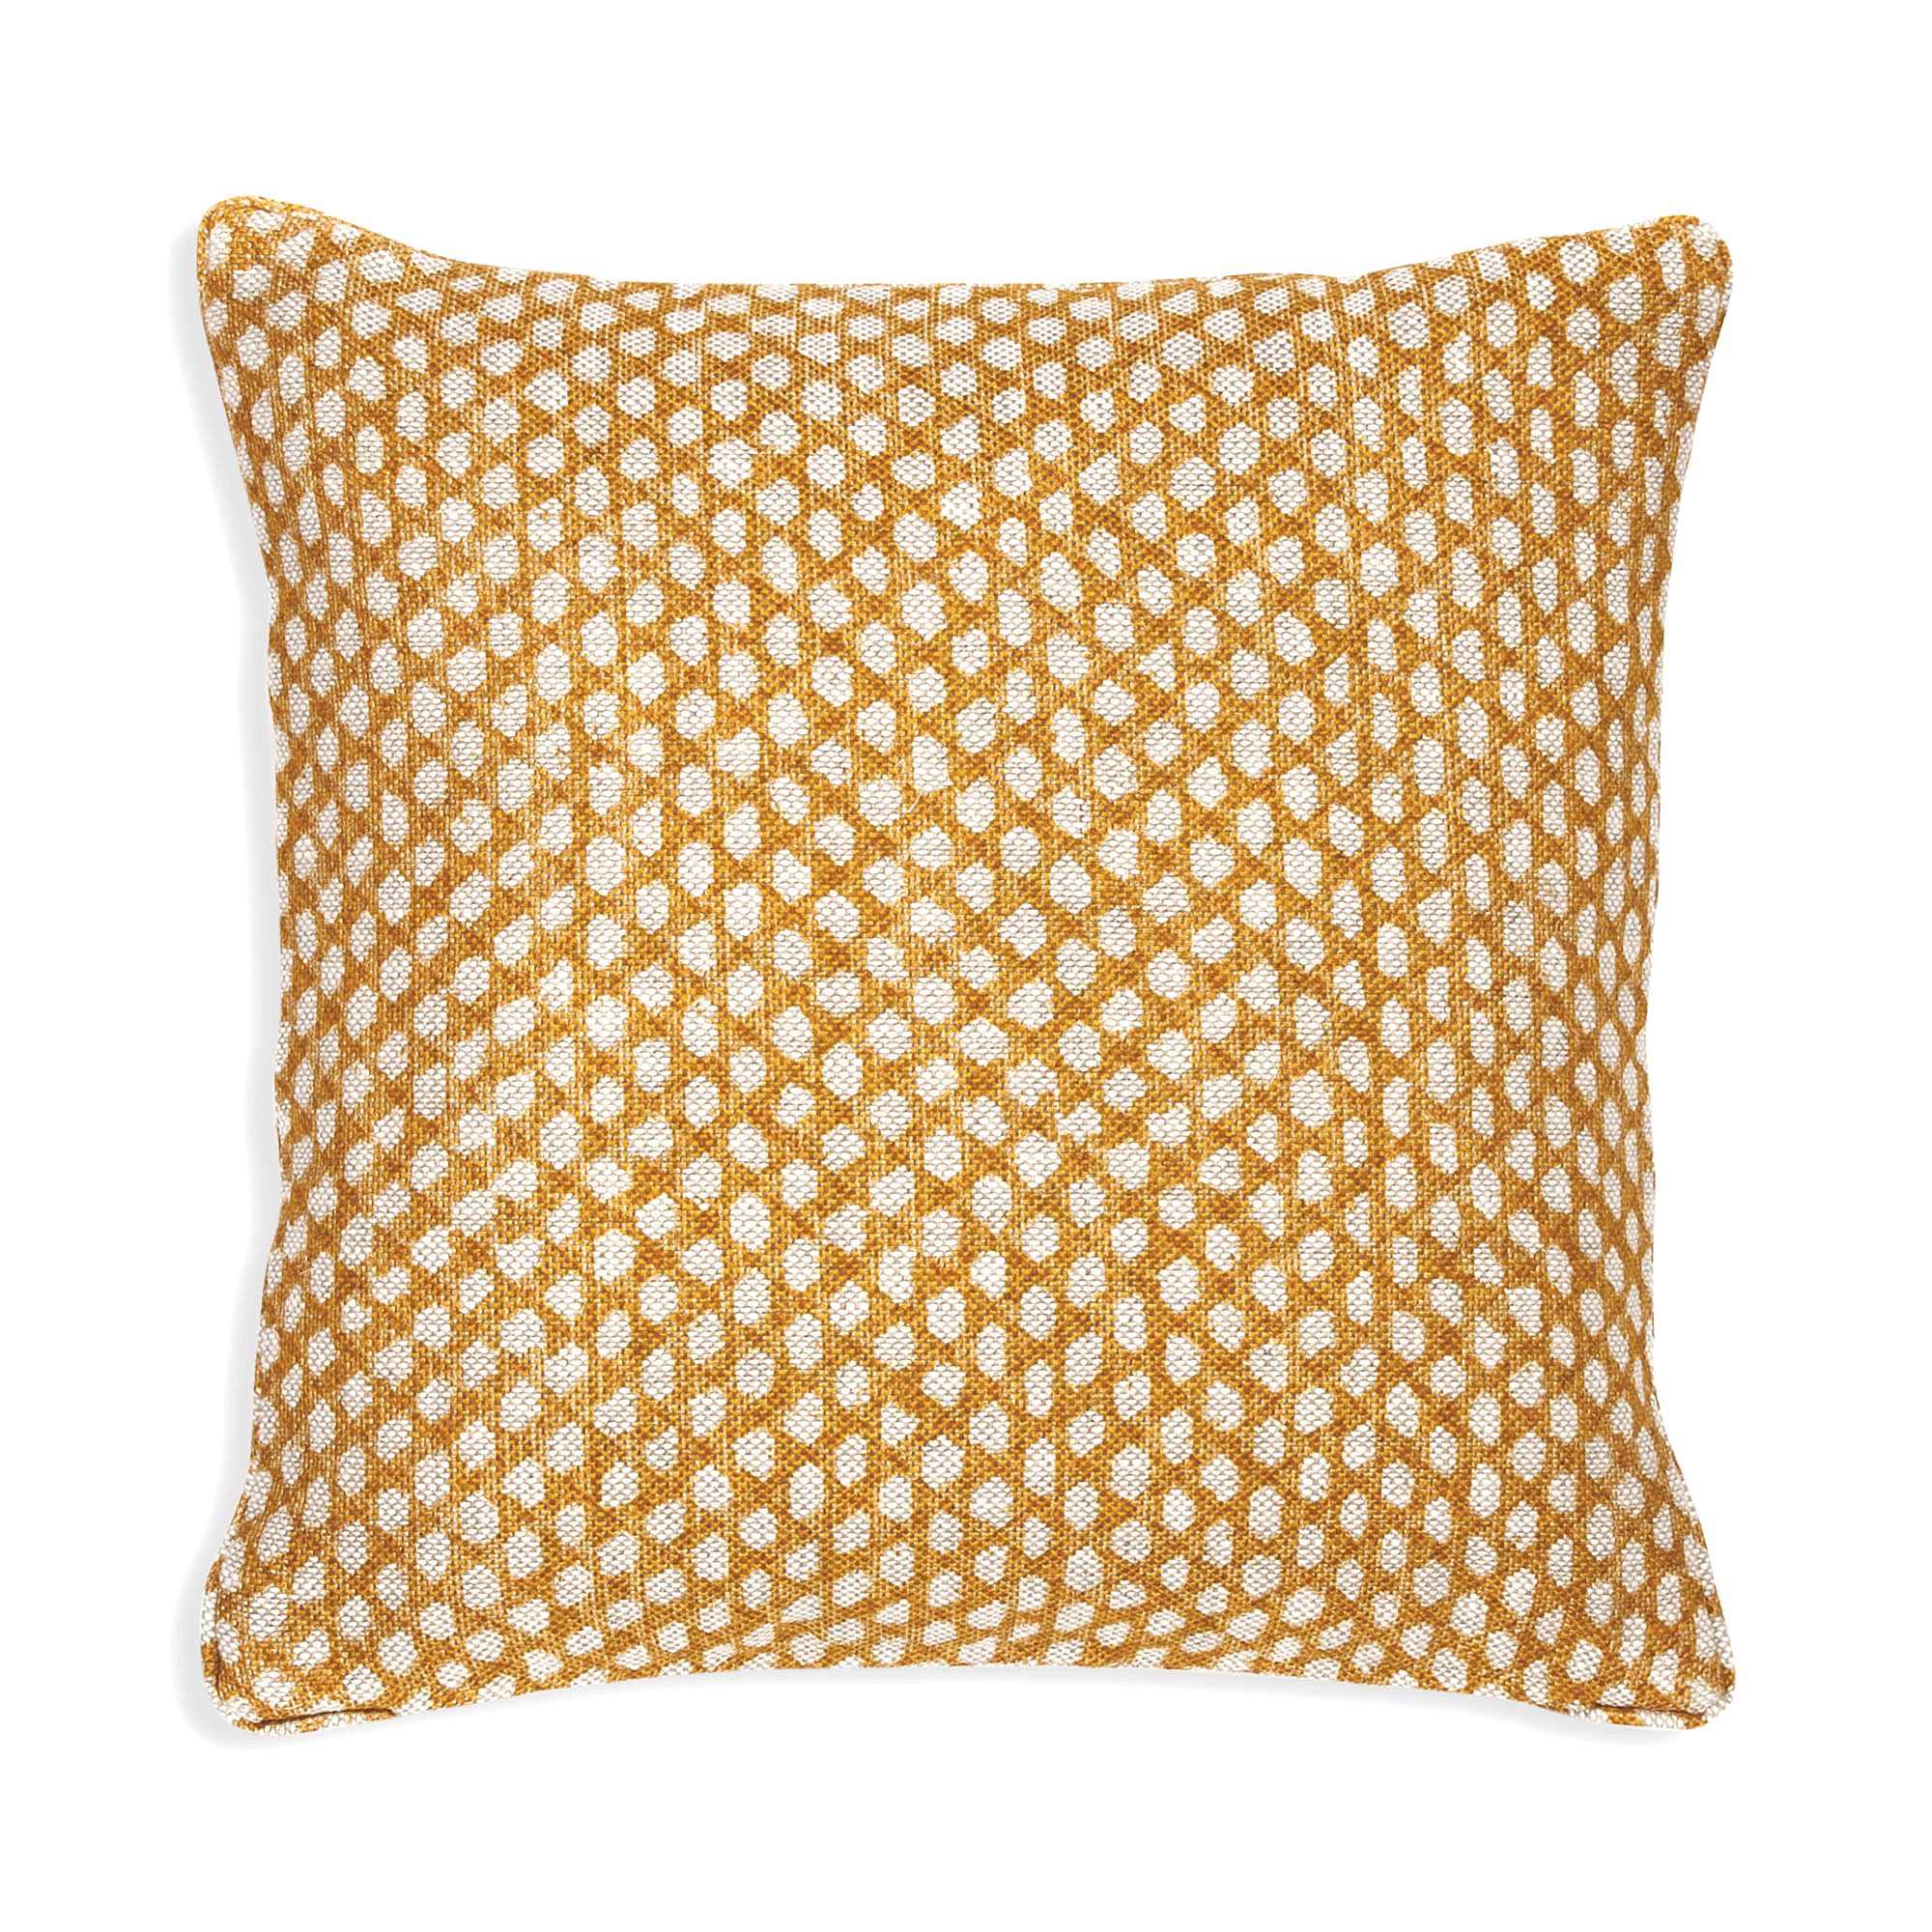 Small Square Cushion in Yellow Wicker